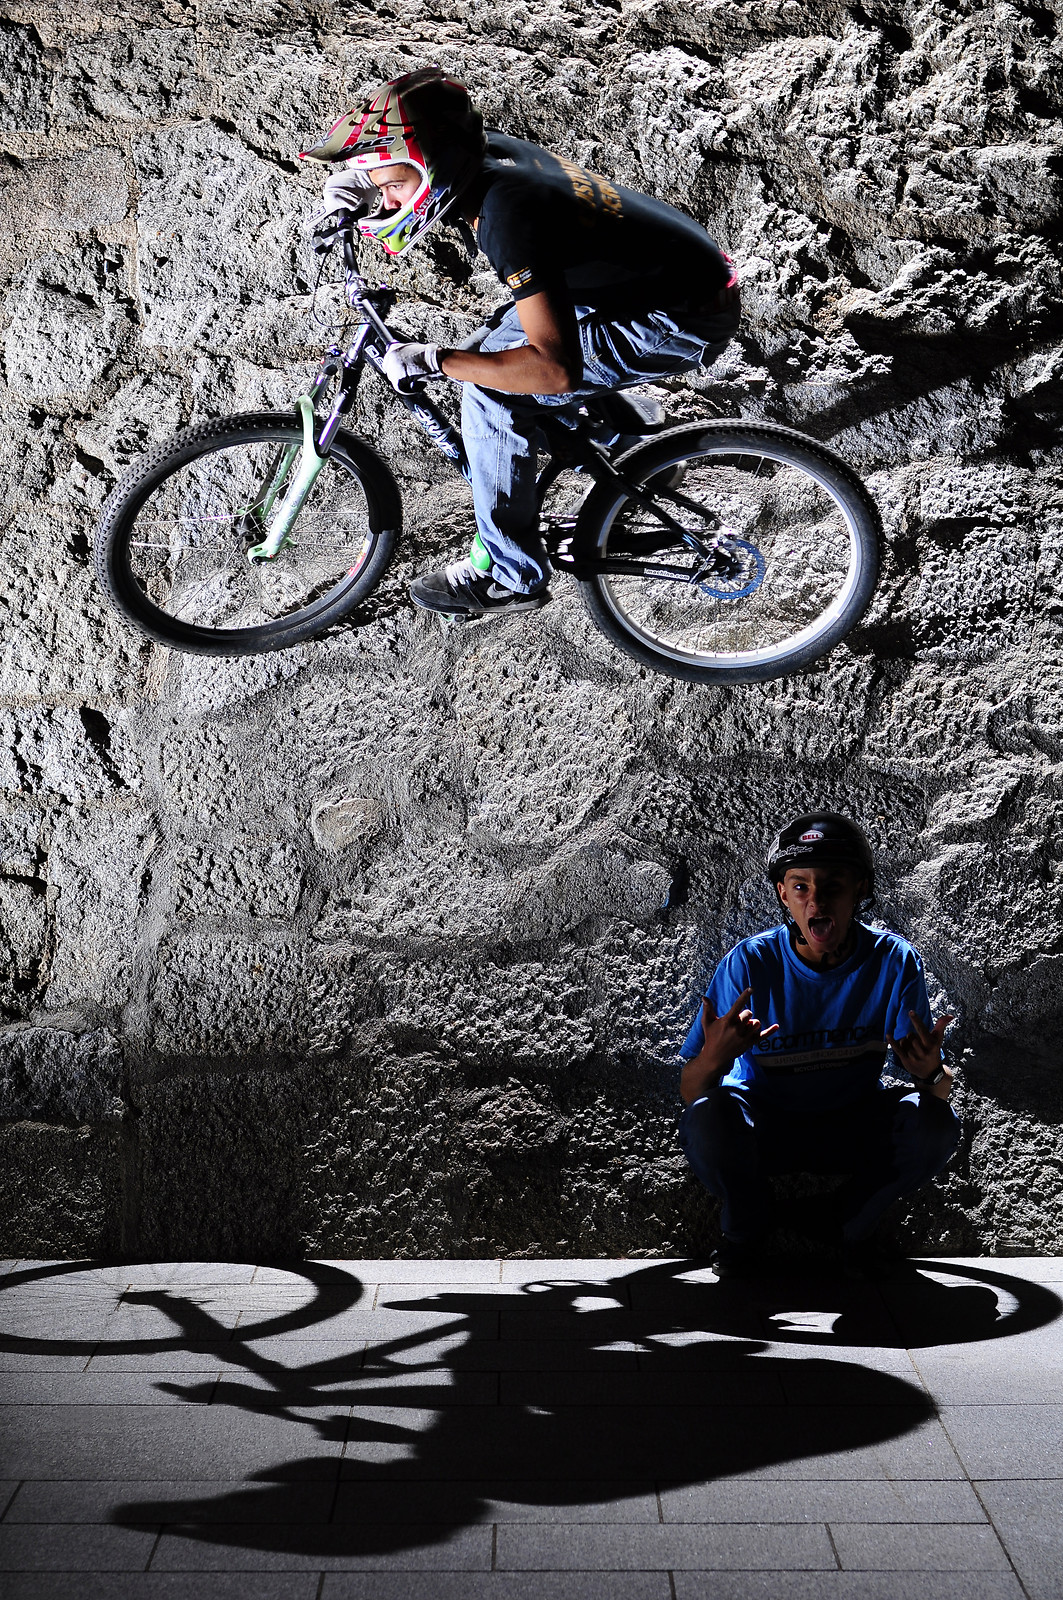 Samuel and Ivan - A.Cubino - Mountain Biking Pictures - Vital MTB